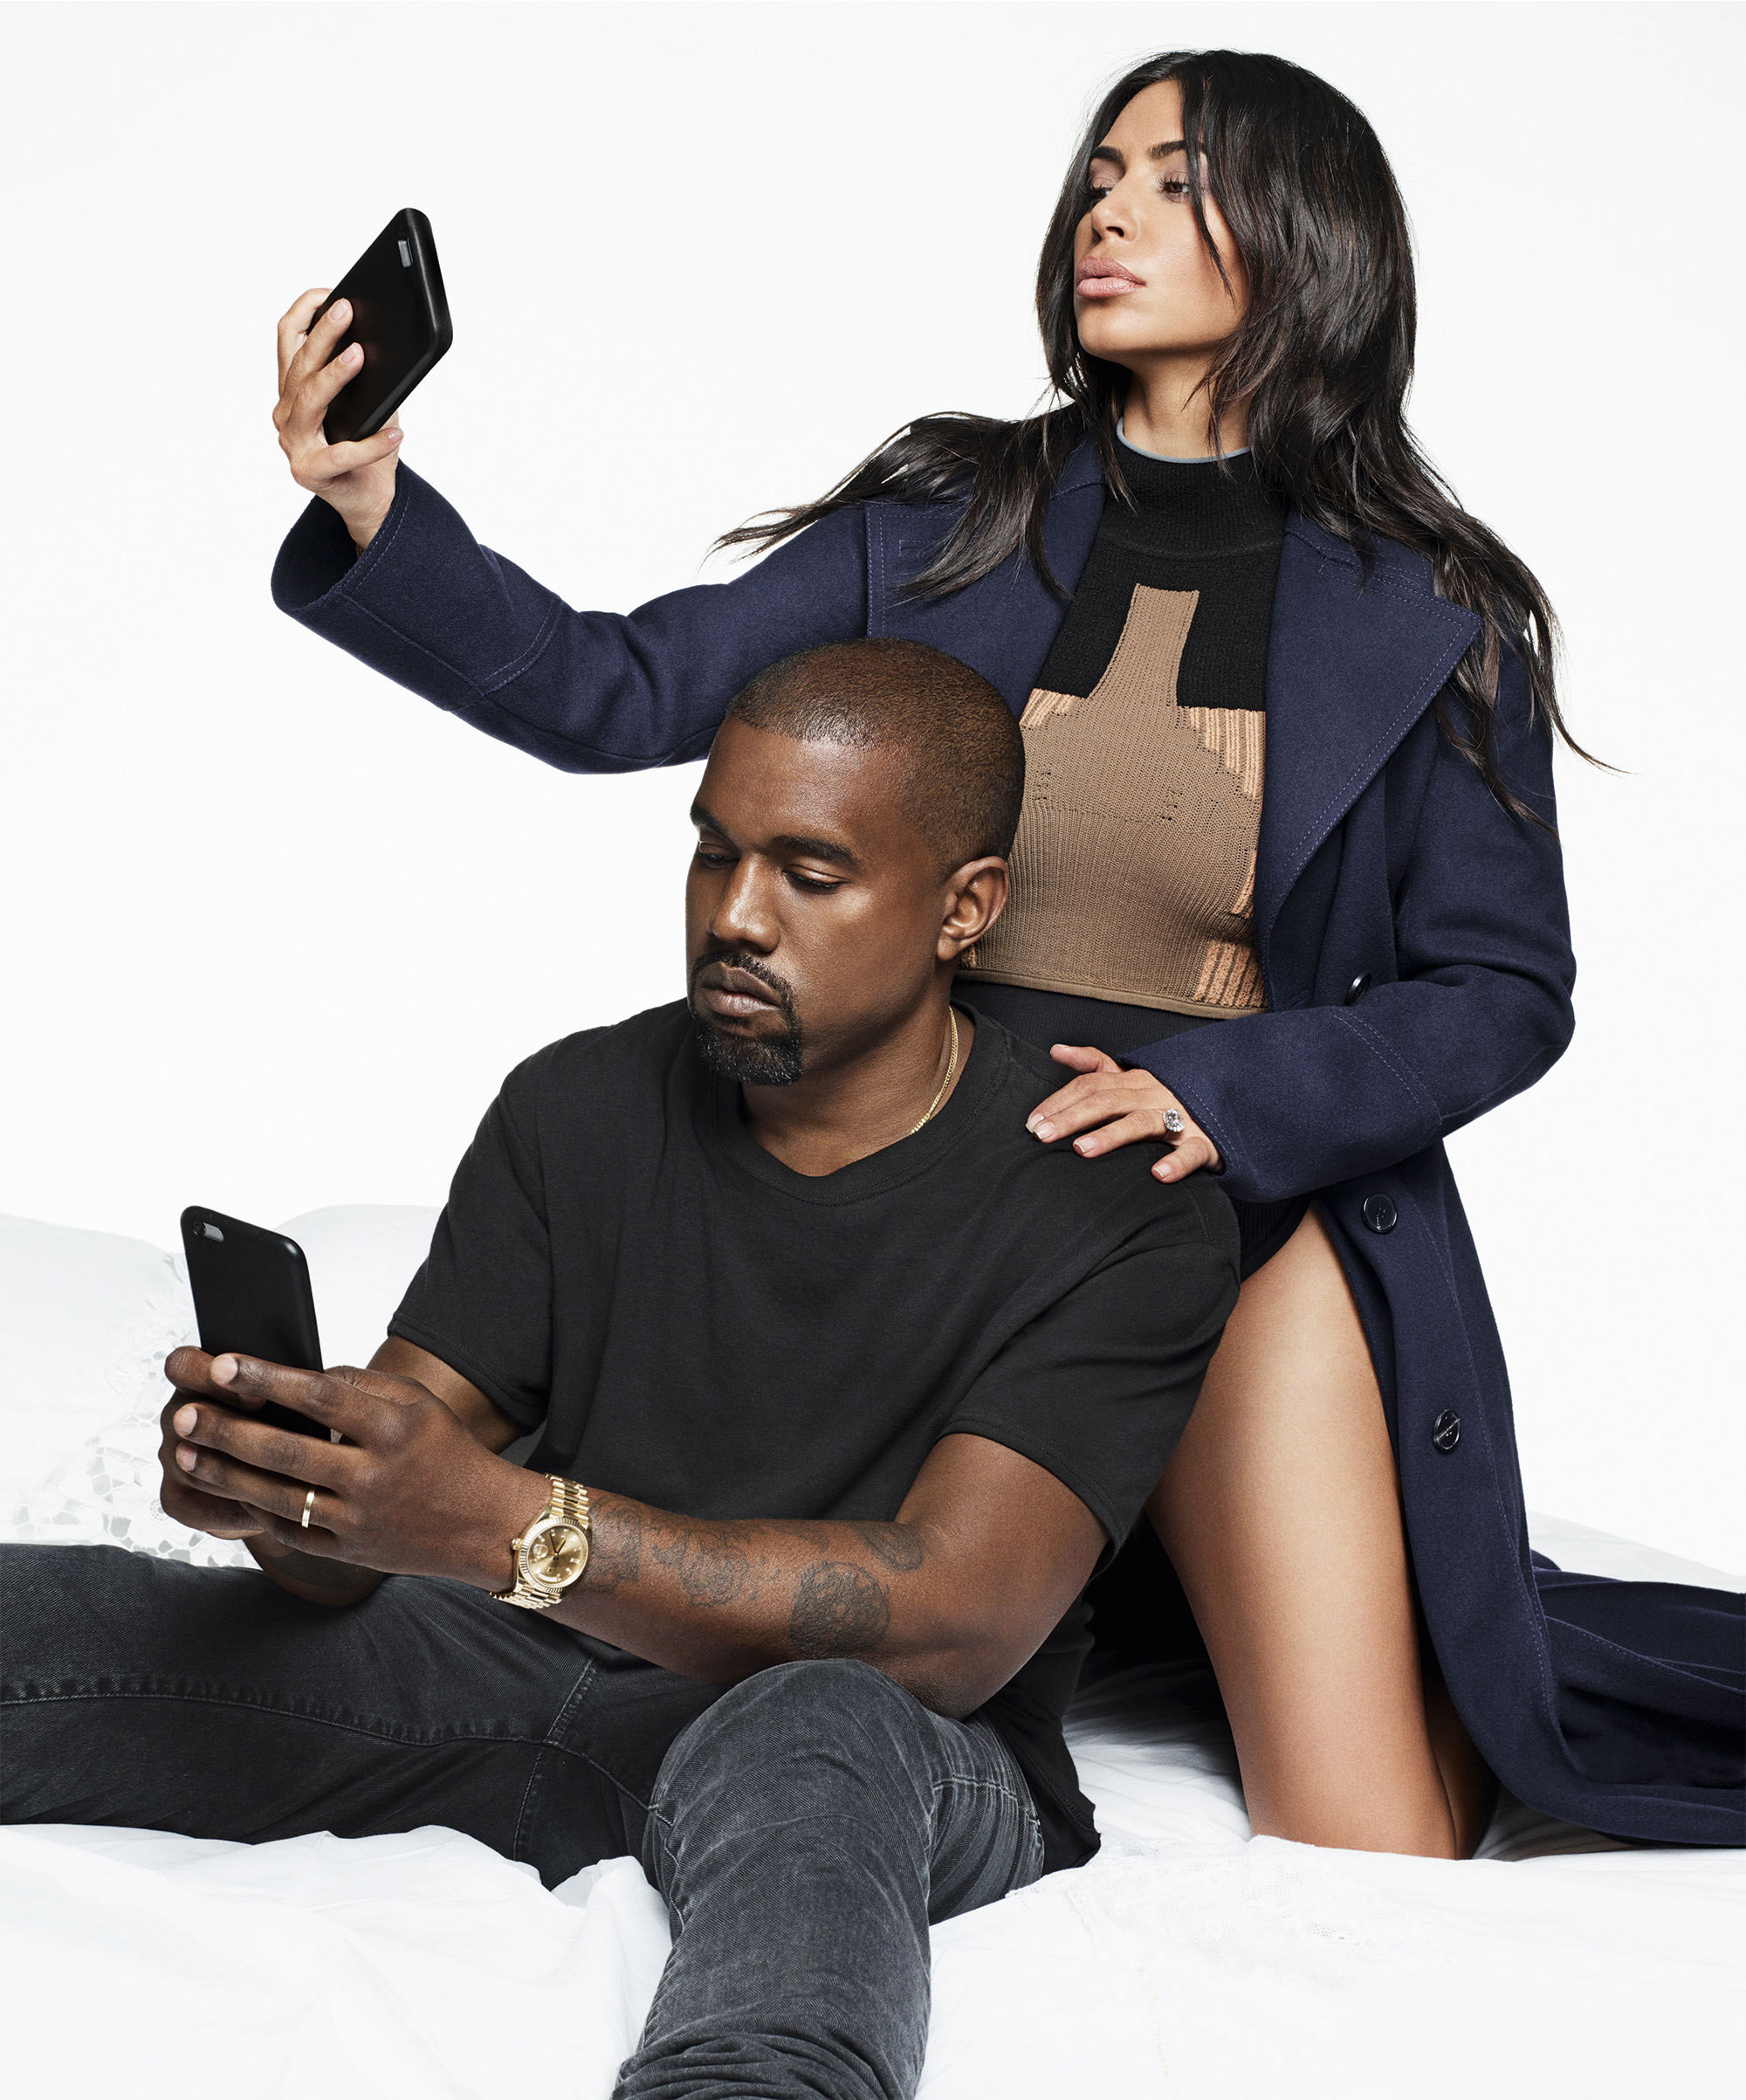 Harpers-Bazaar-US-September-2016-Kim-Kardashian-Kanye-West-by-Karl-Lagerfeld-yesonfashion-03